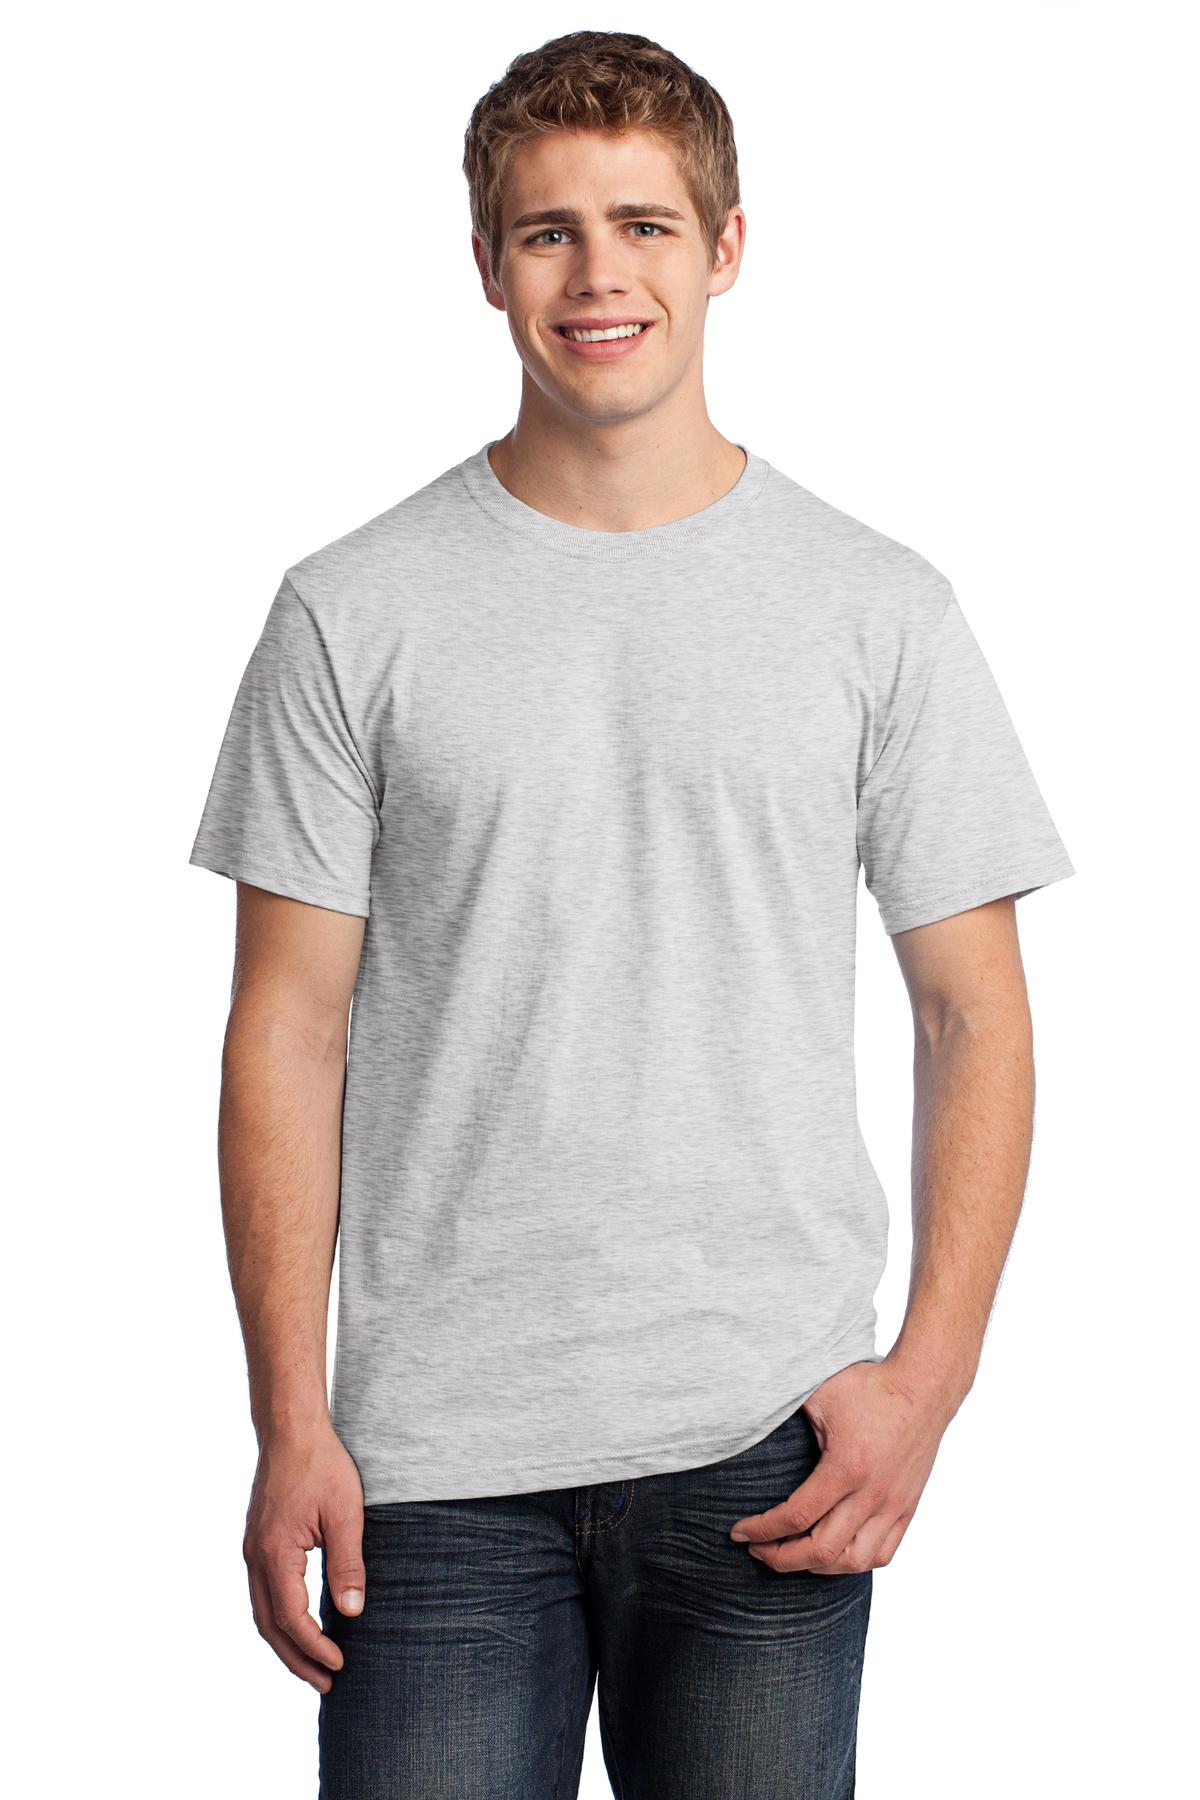 Fruit of the Loom ®  HD Cotton ™  100% Cotton T-Shirt. 3930 - Ash*